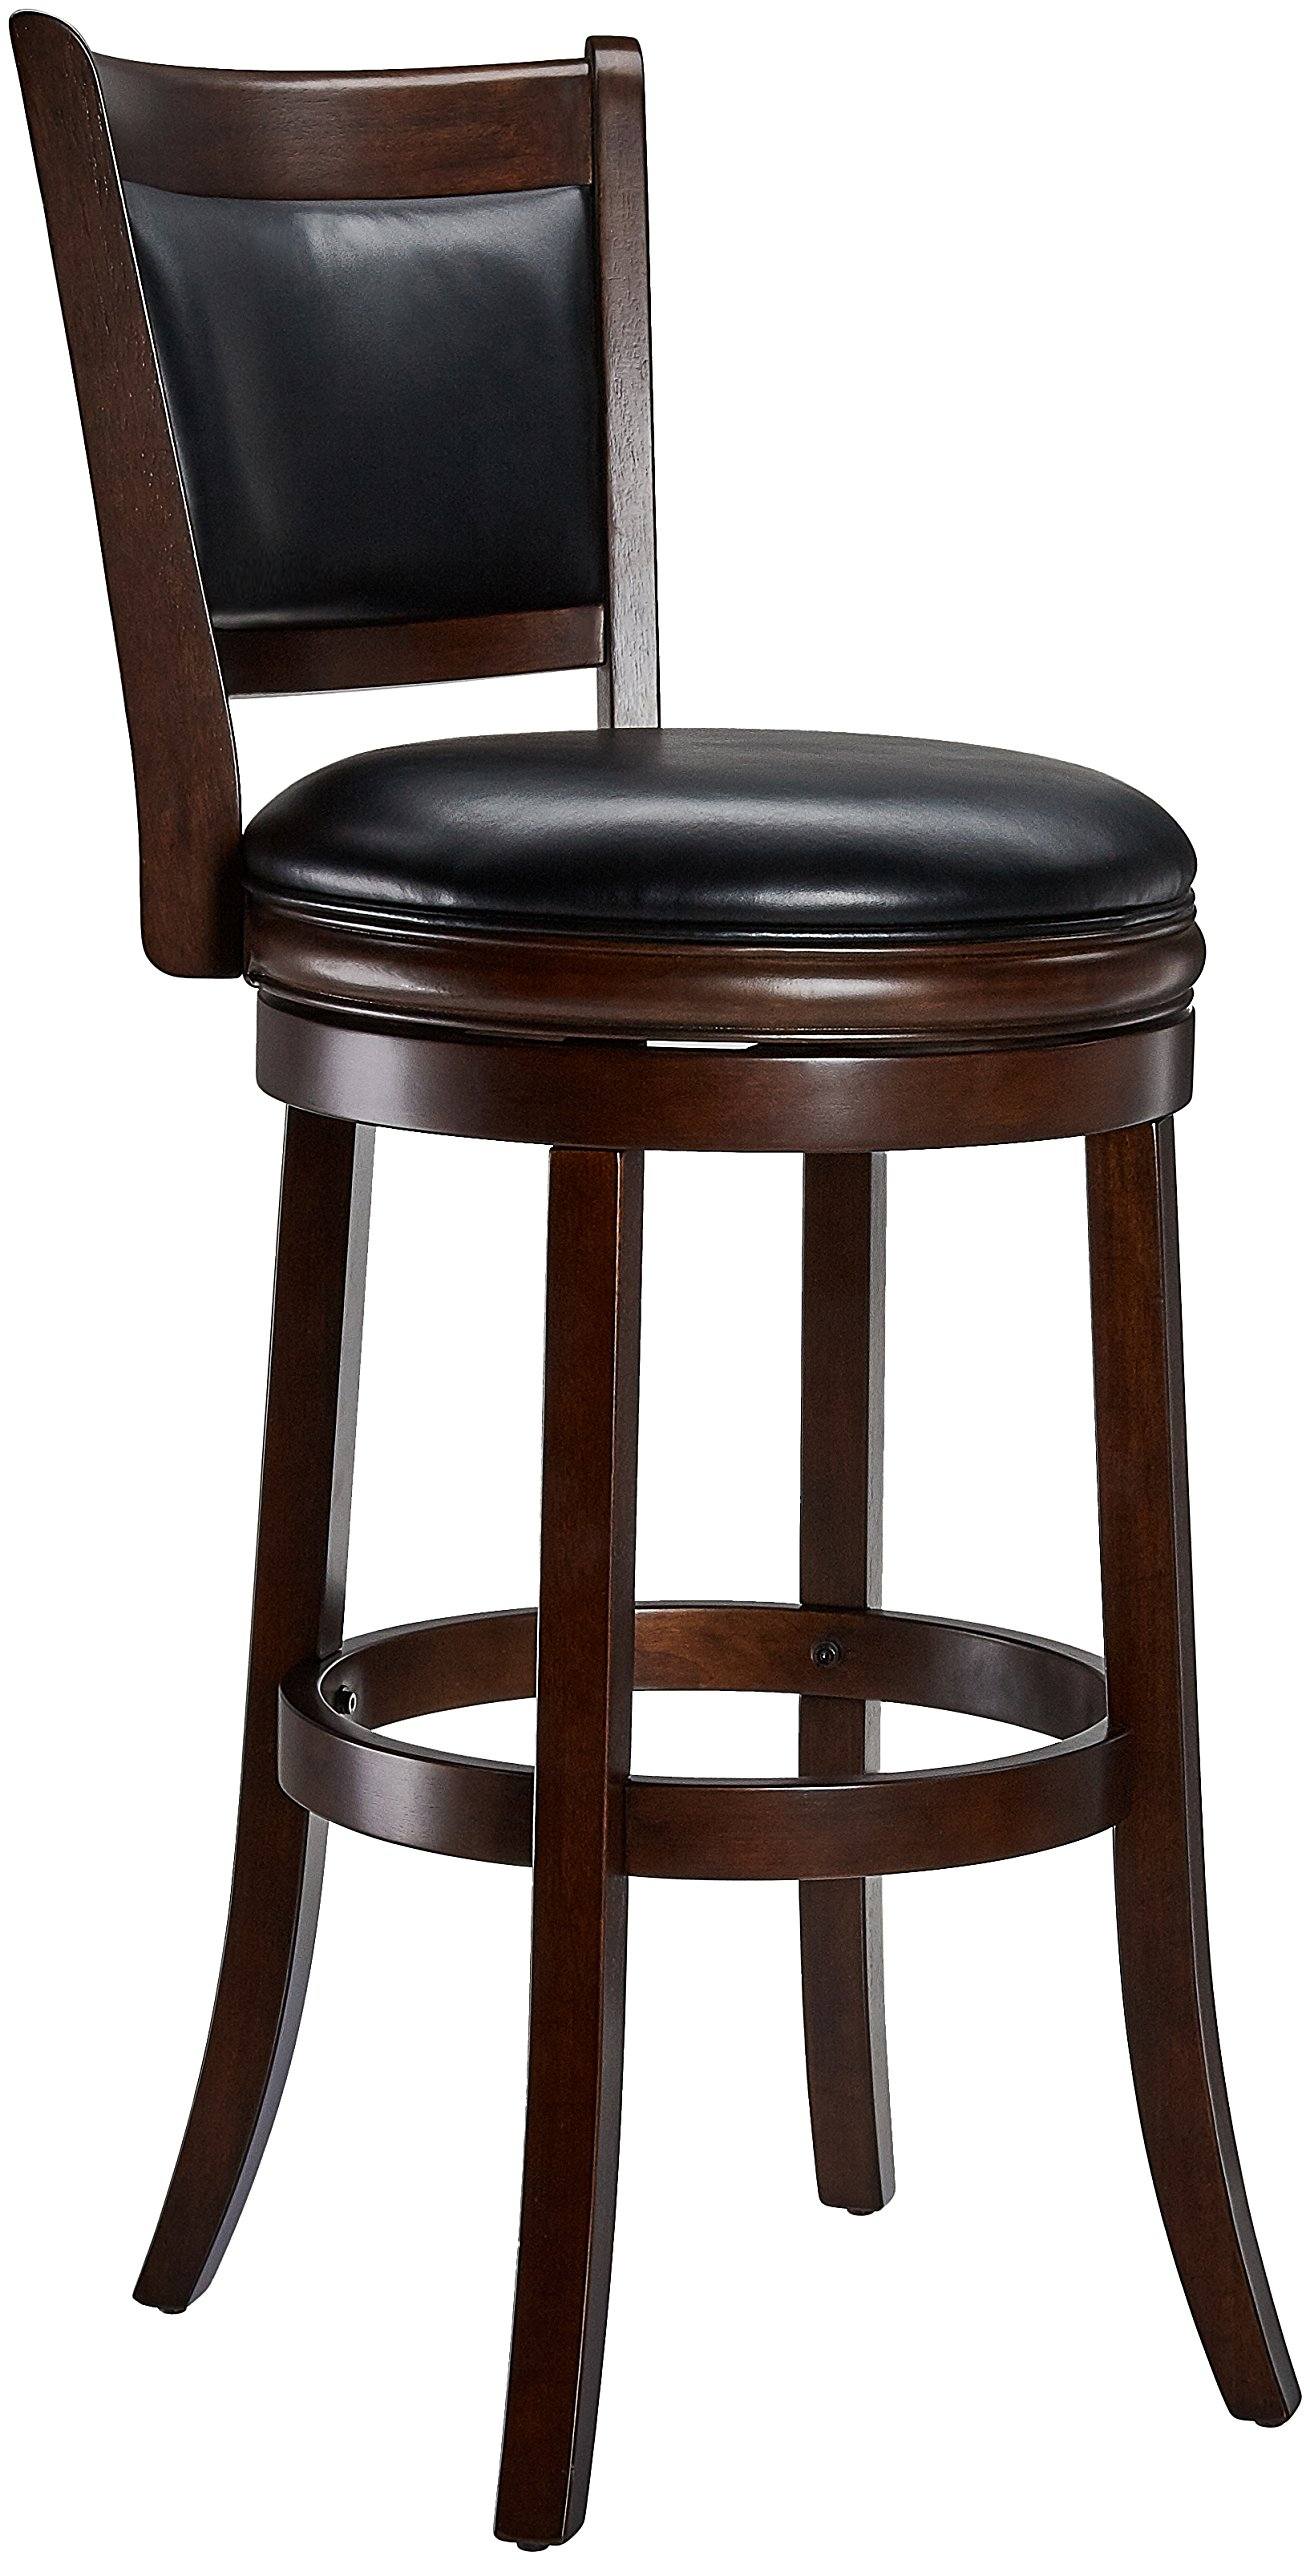 Ball & Cast Jayden Wooden Swivel Bar Stool with Faux-Leather Upholstery - 29 Inch Seat Height, Cappuccino by Ball & Cast